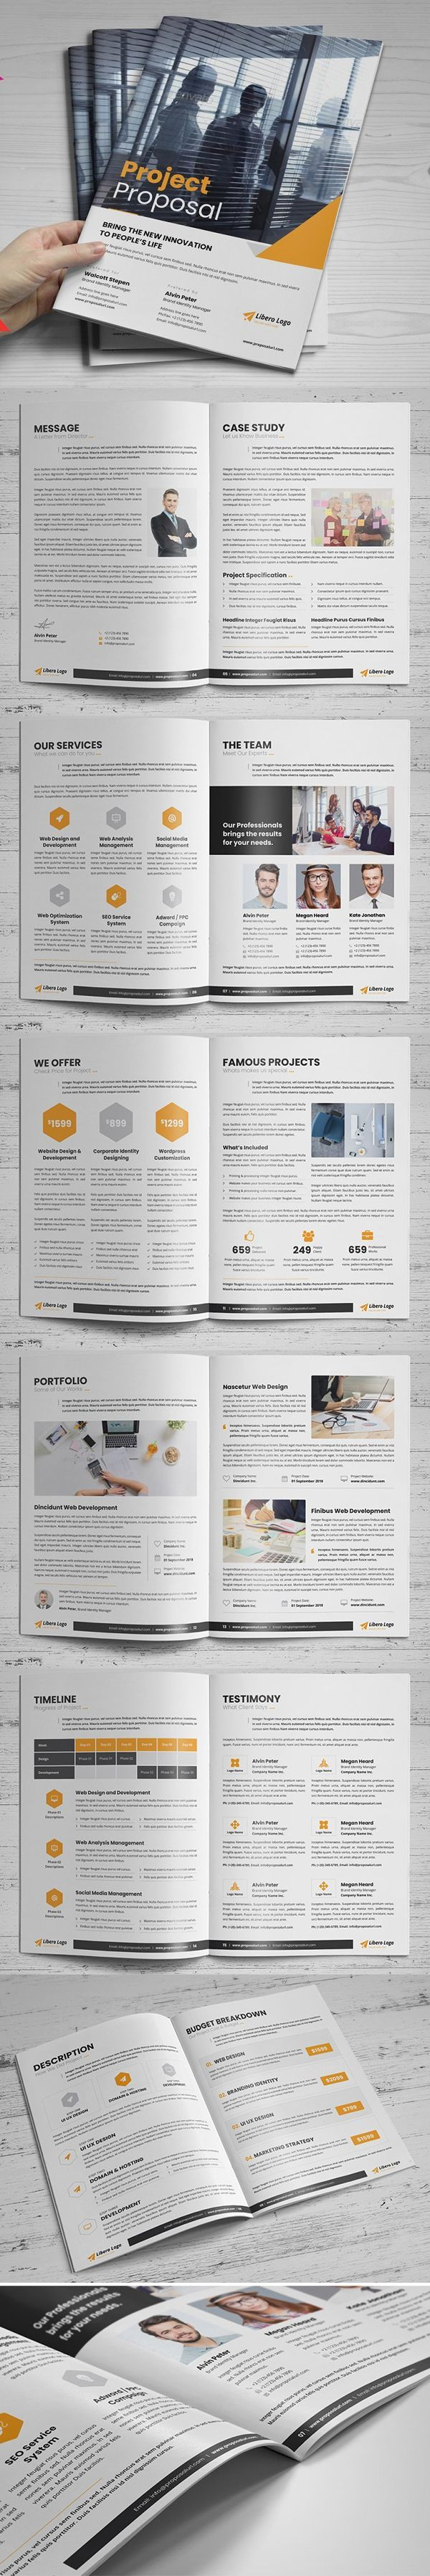 Project Business Proposal Design Free Project Proposal Template Business Proposal Te Graphic Design Brochure Business Brochure Design Brochure Design Template